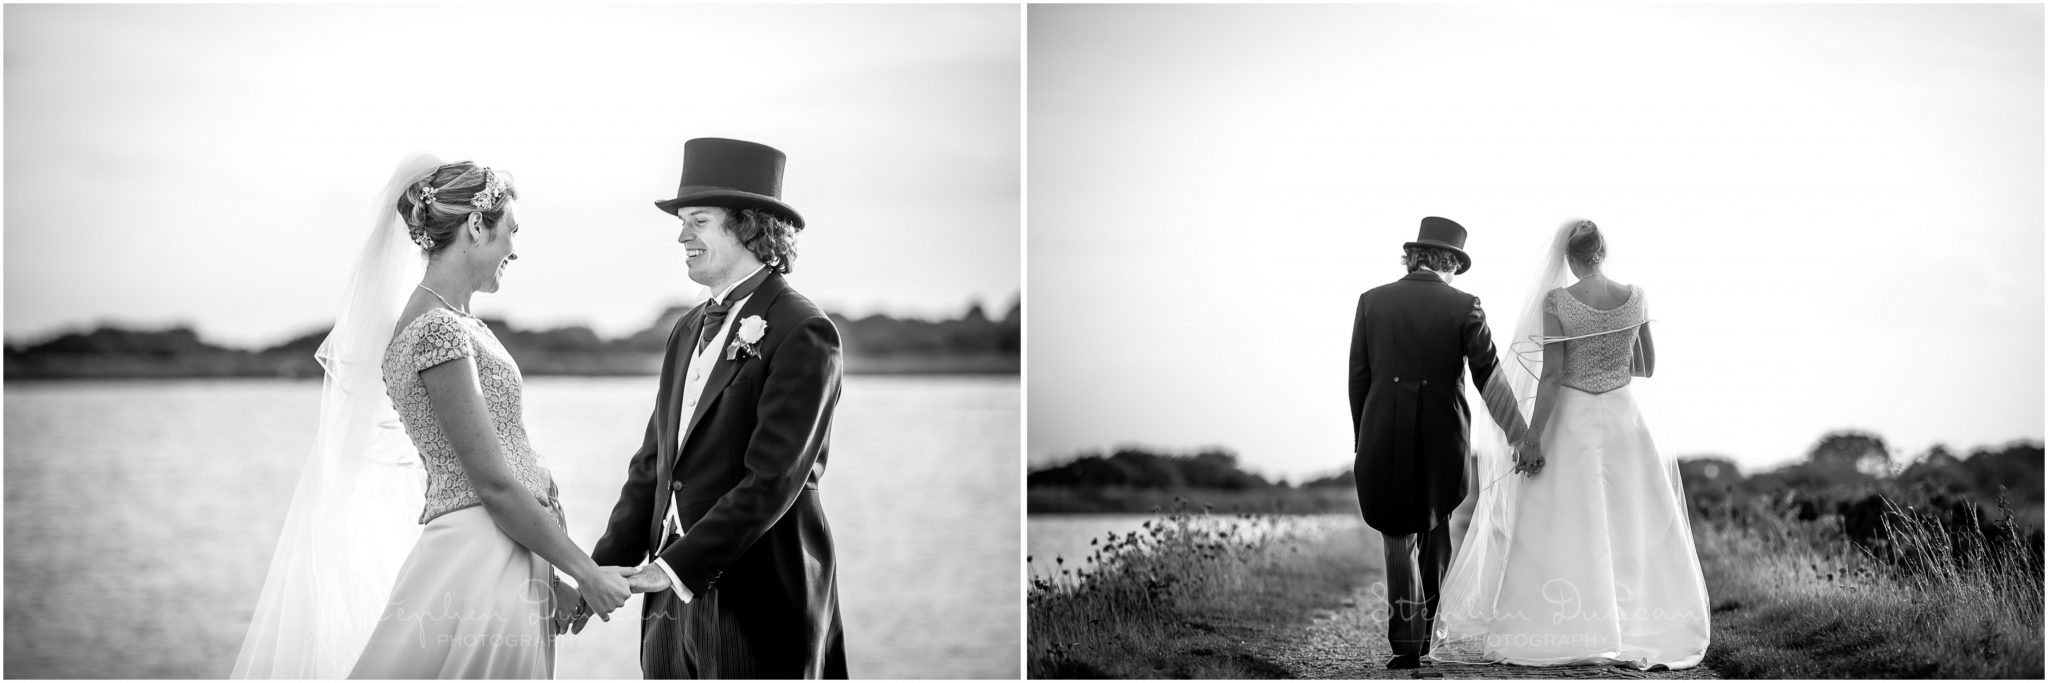 Lymington wedding photography couple portraits